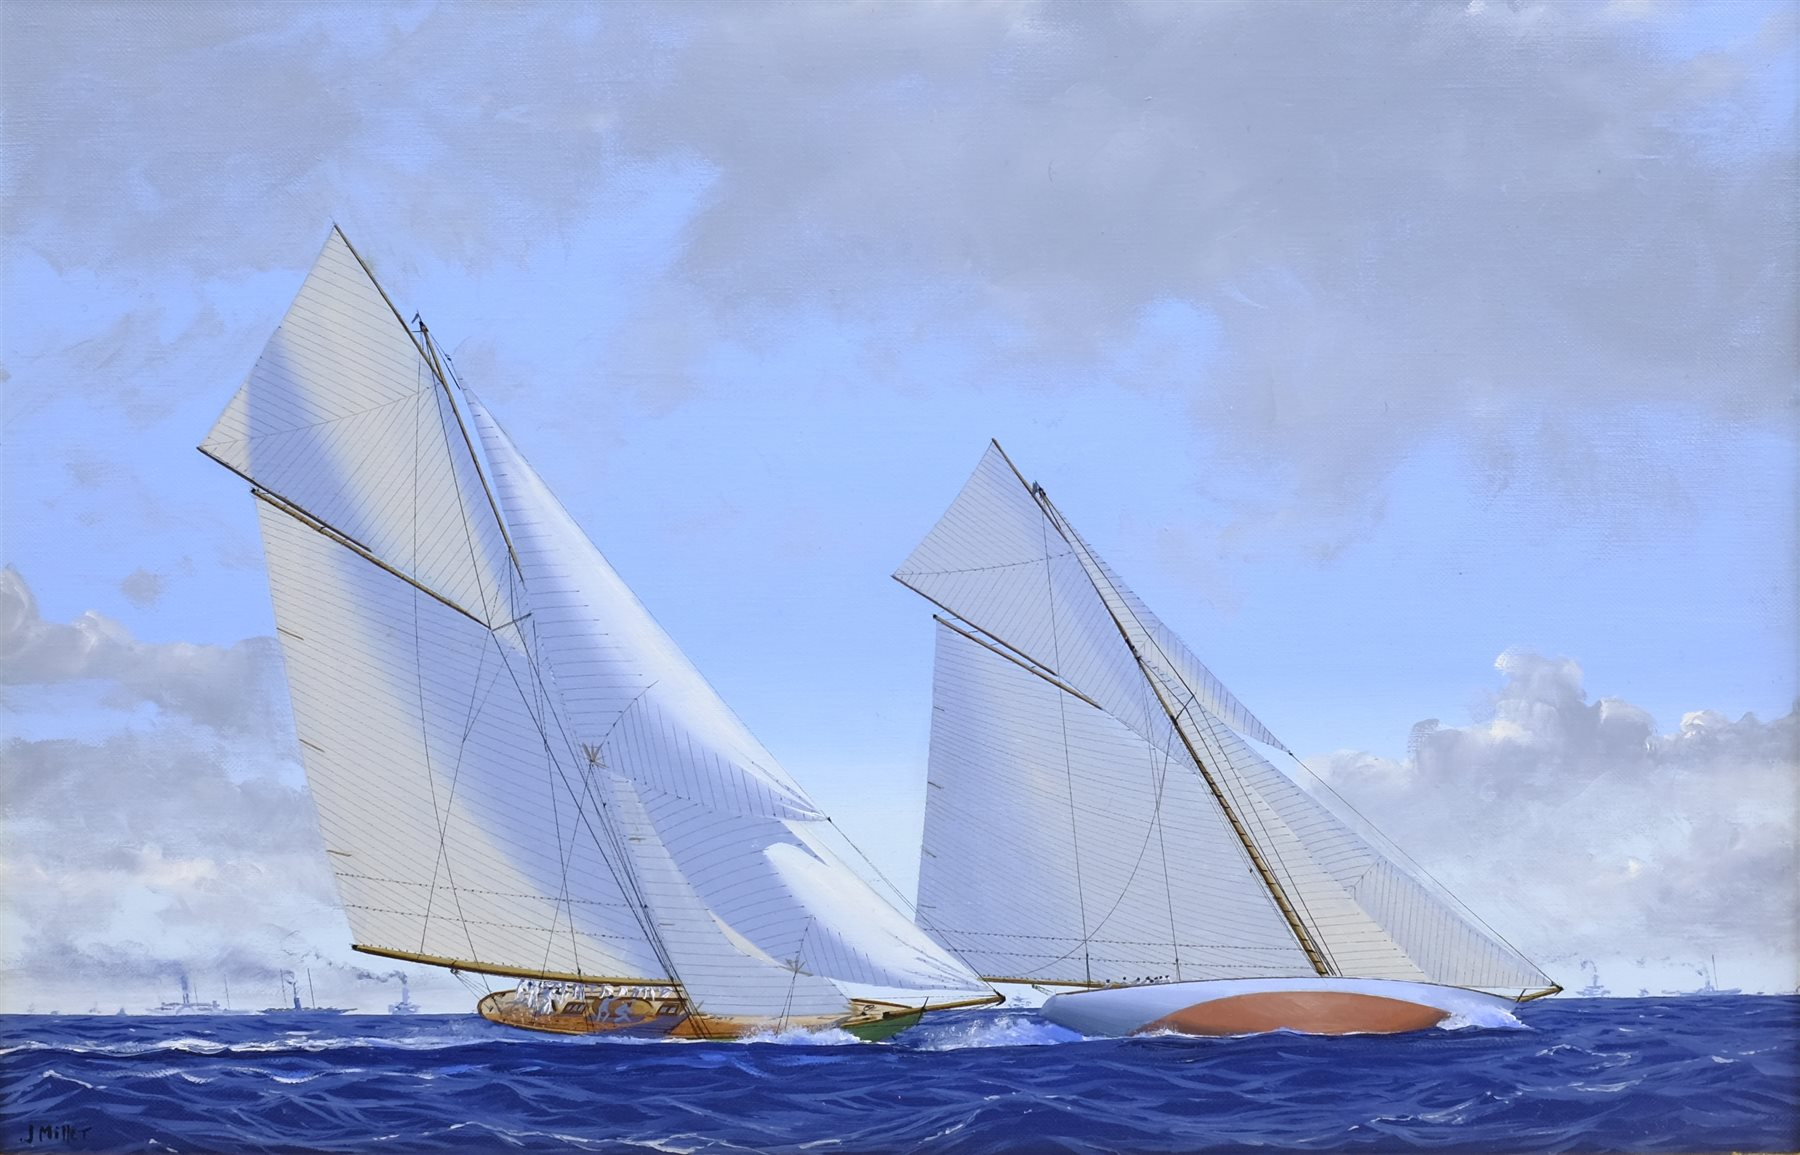 James Miller (British 1962-): 'Shamrock II' & 'Columbia' in the America's Cup Series 11th challenge - Image 2 of 4